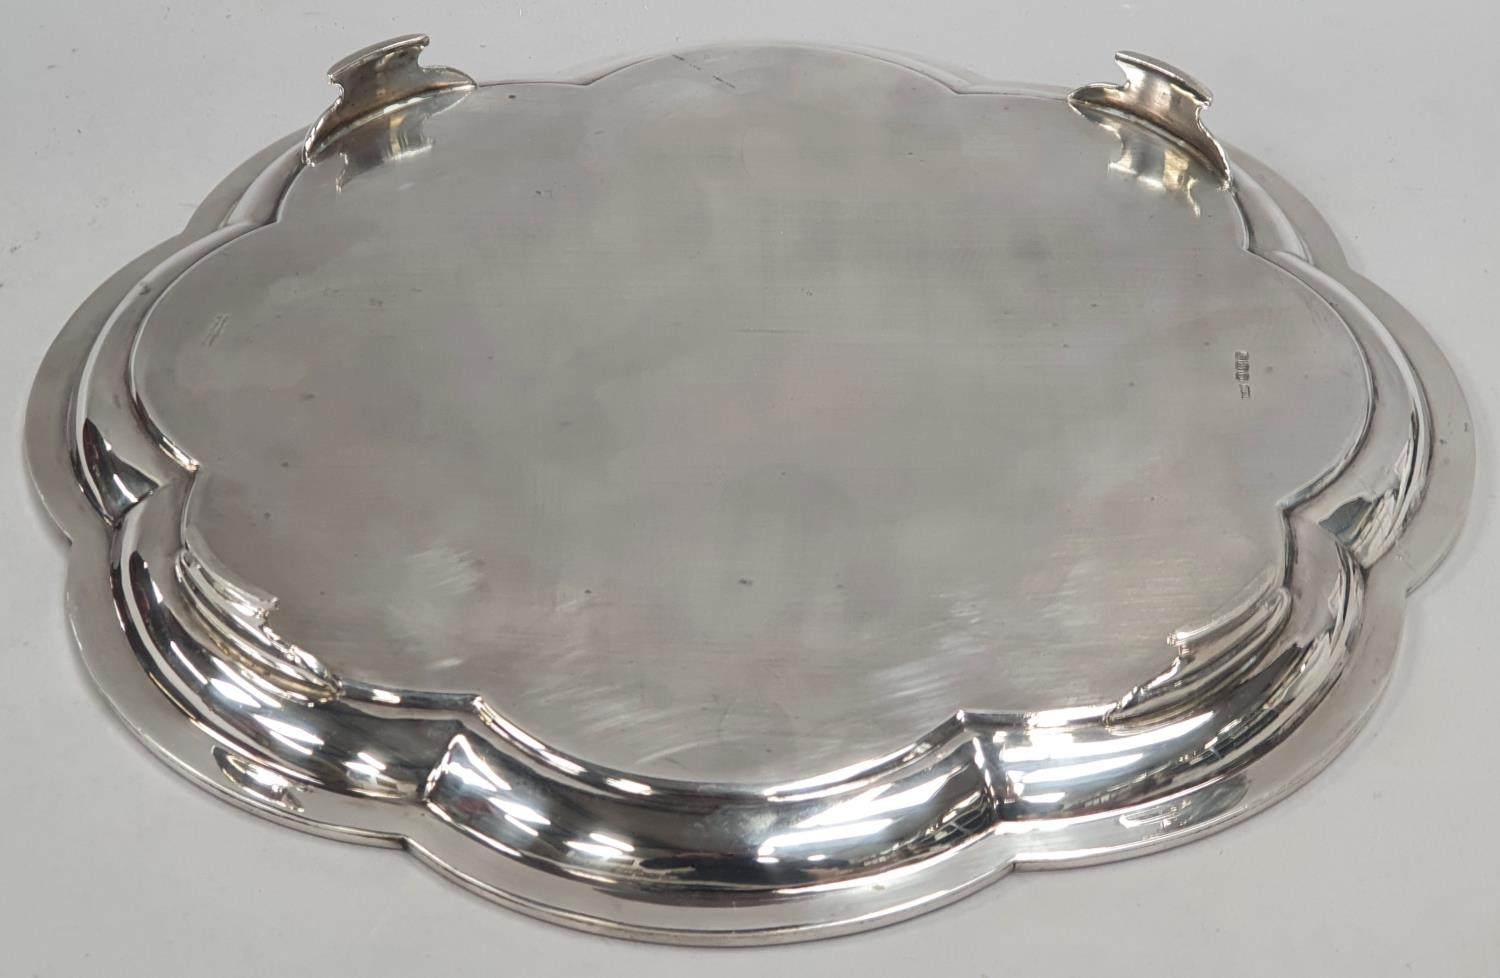 Sterling silver salver with scalloped rim - Sheffield 1929 by Mappin & Webb - approx 1181 grams. - Image 3 of 5